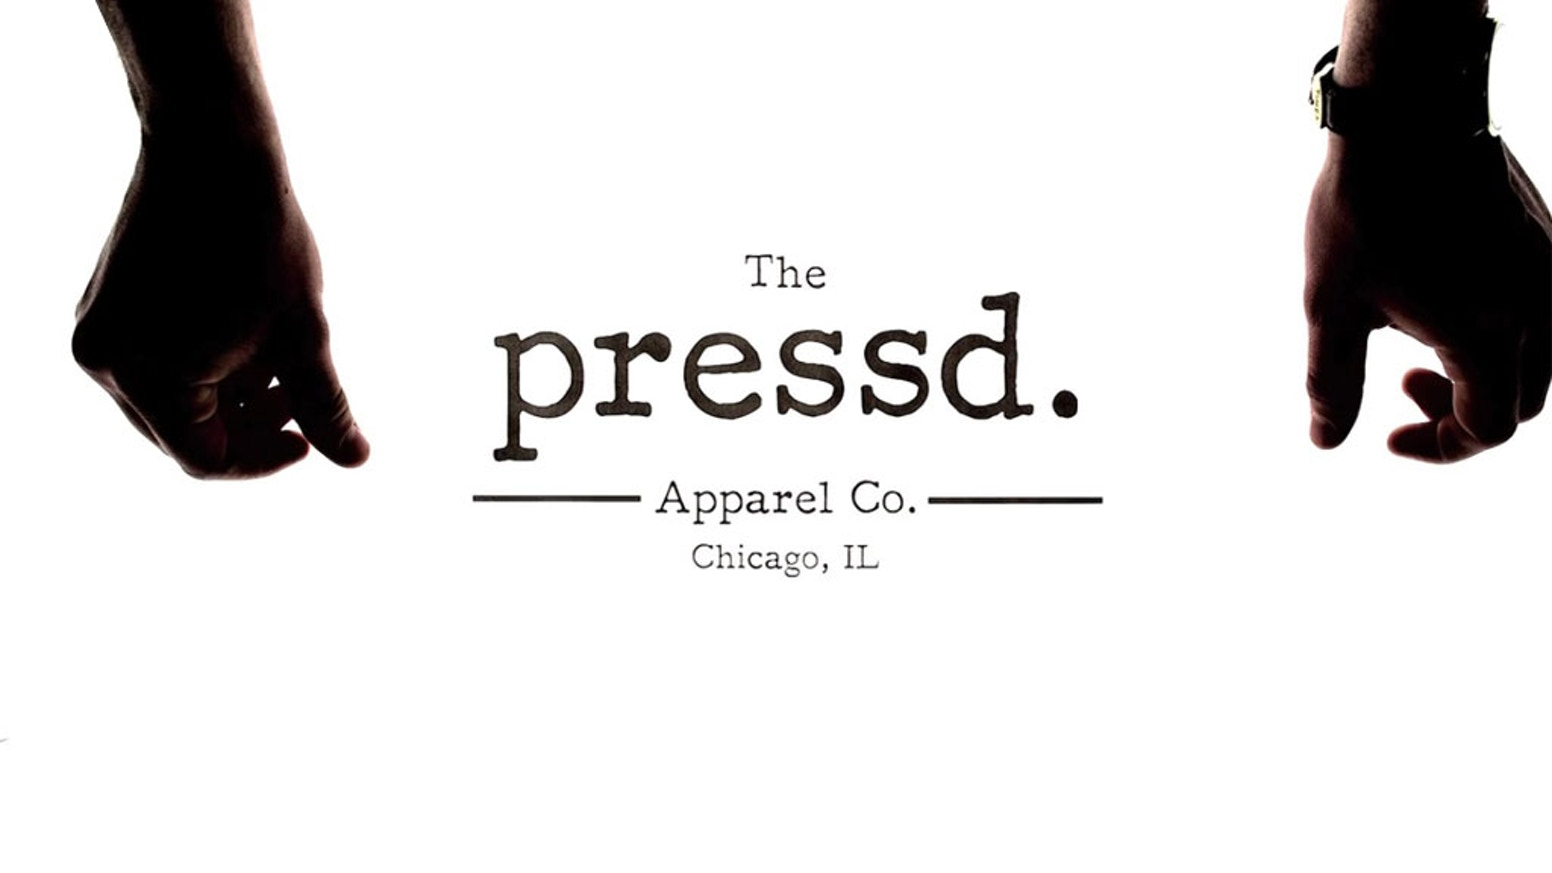 Creating the best custom printed apparel possible. Premium quality & American made apparel, Eco-friendly inks, and proud to be a one for one company - Let's design your perfect t-shirt today. www.pressdapparel.com